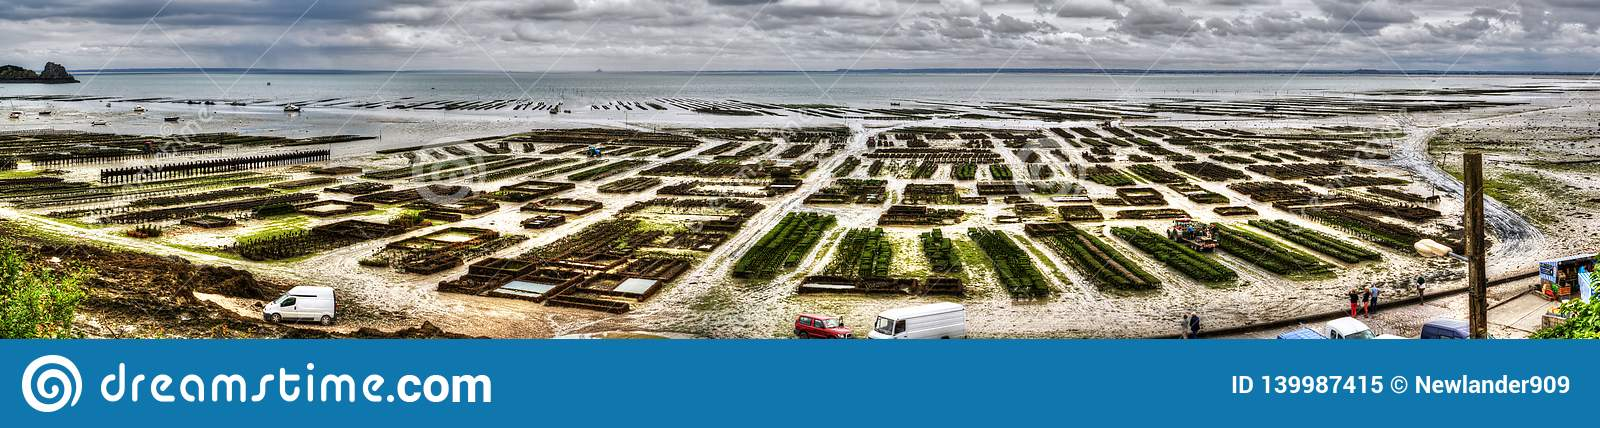 Panoramic view of oysters farm in Cancal, France